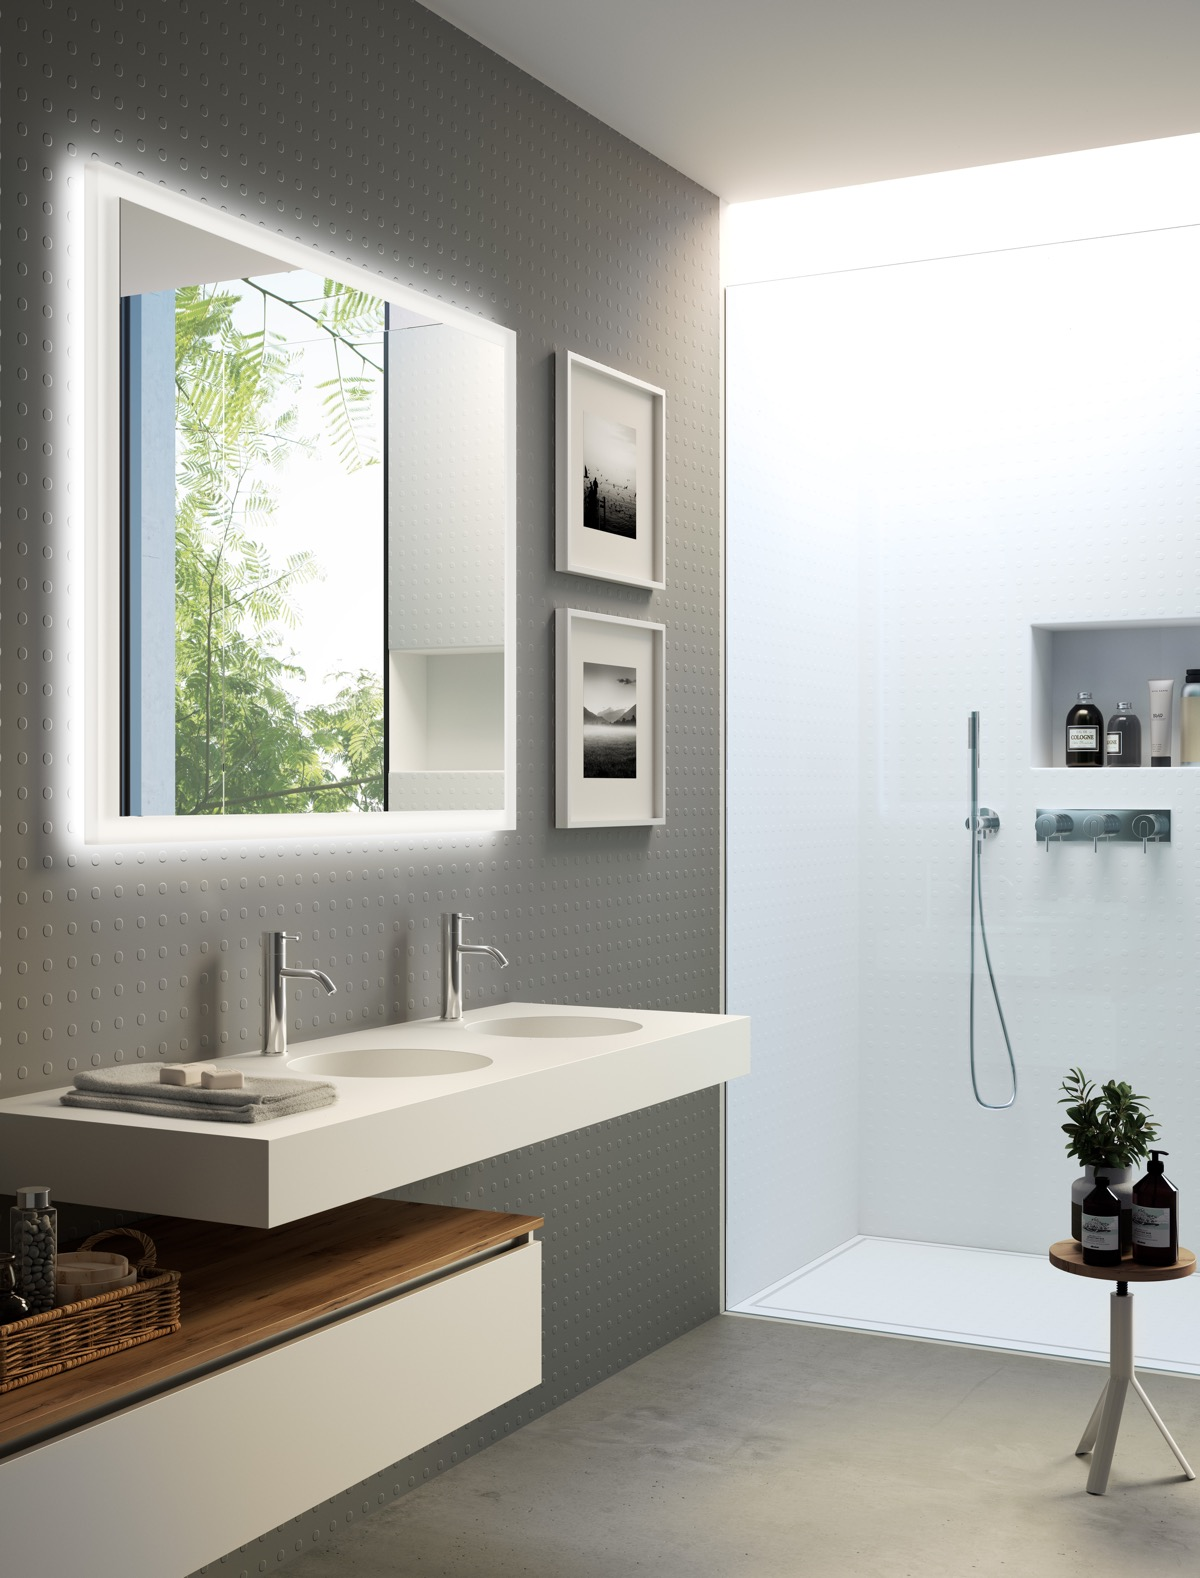 london ceramic trends white vanity double bathroom avola set design element inch finish sink